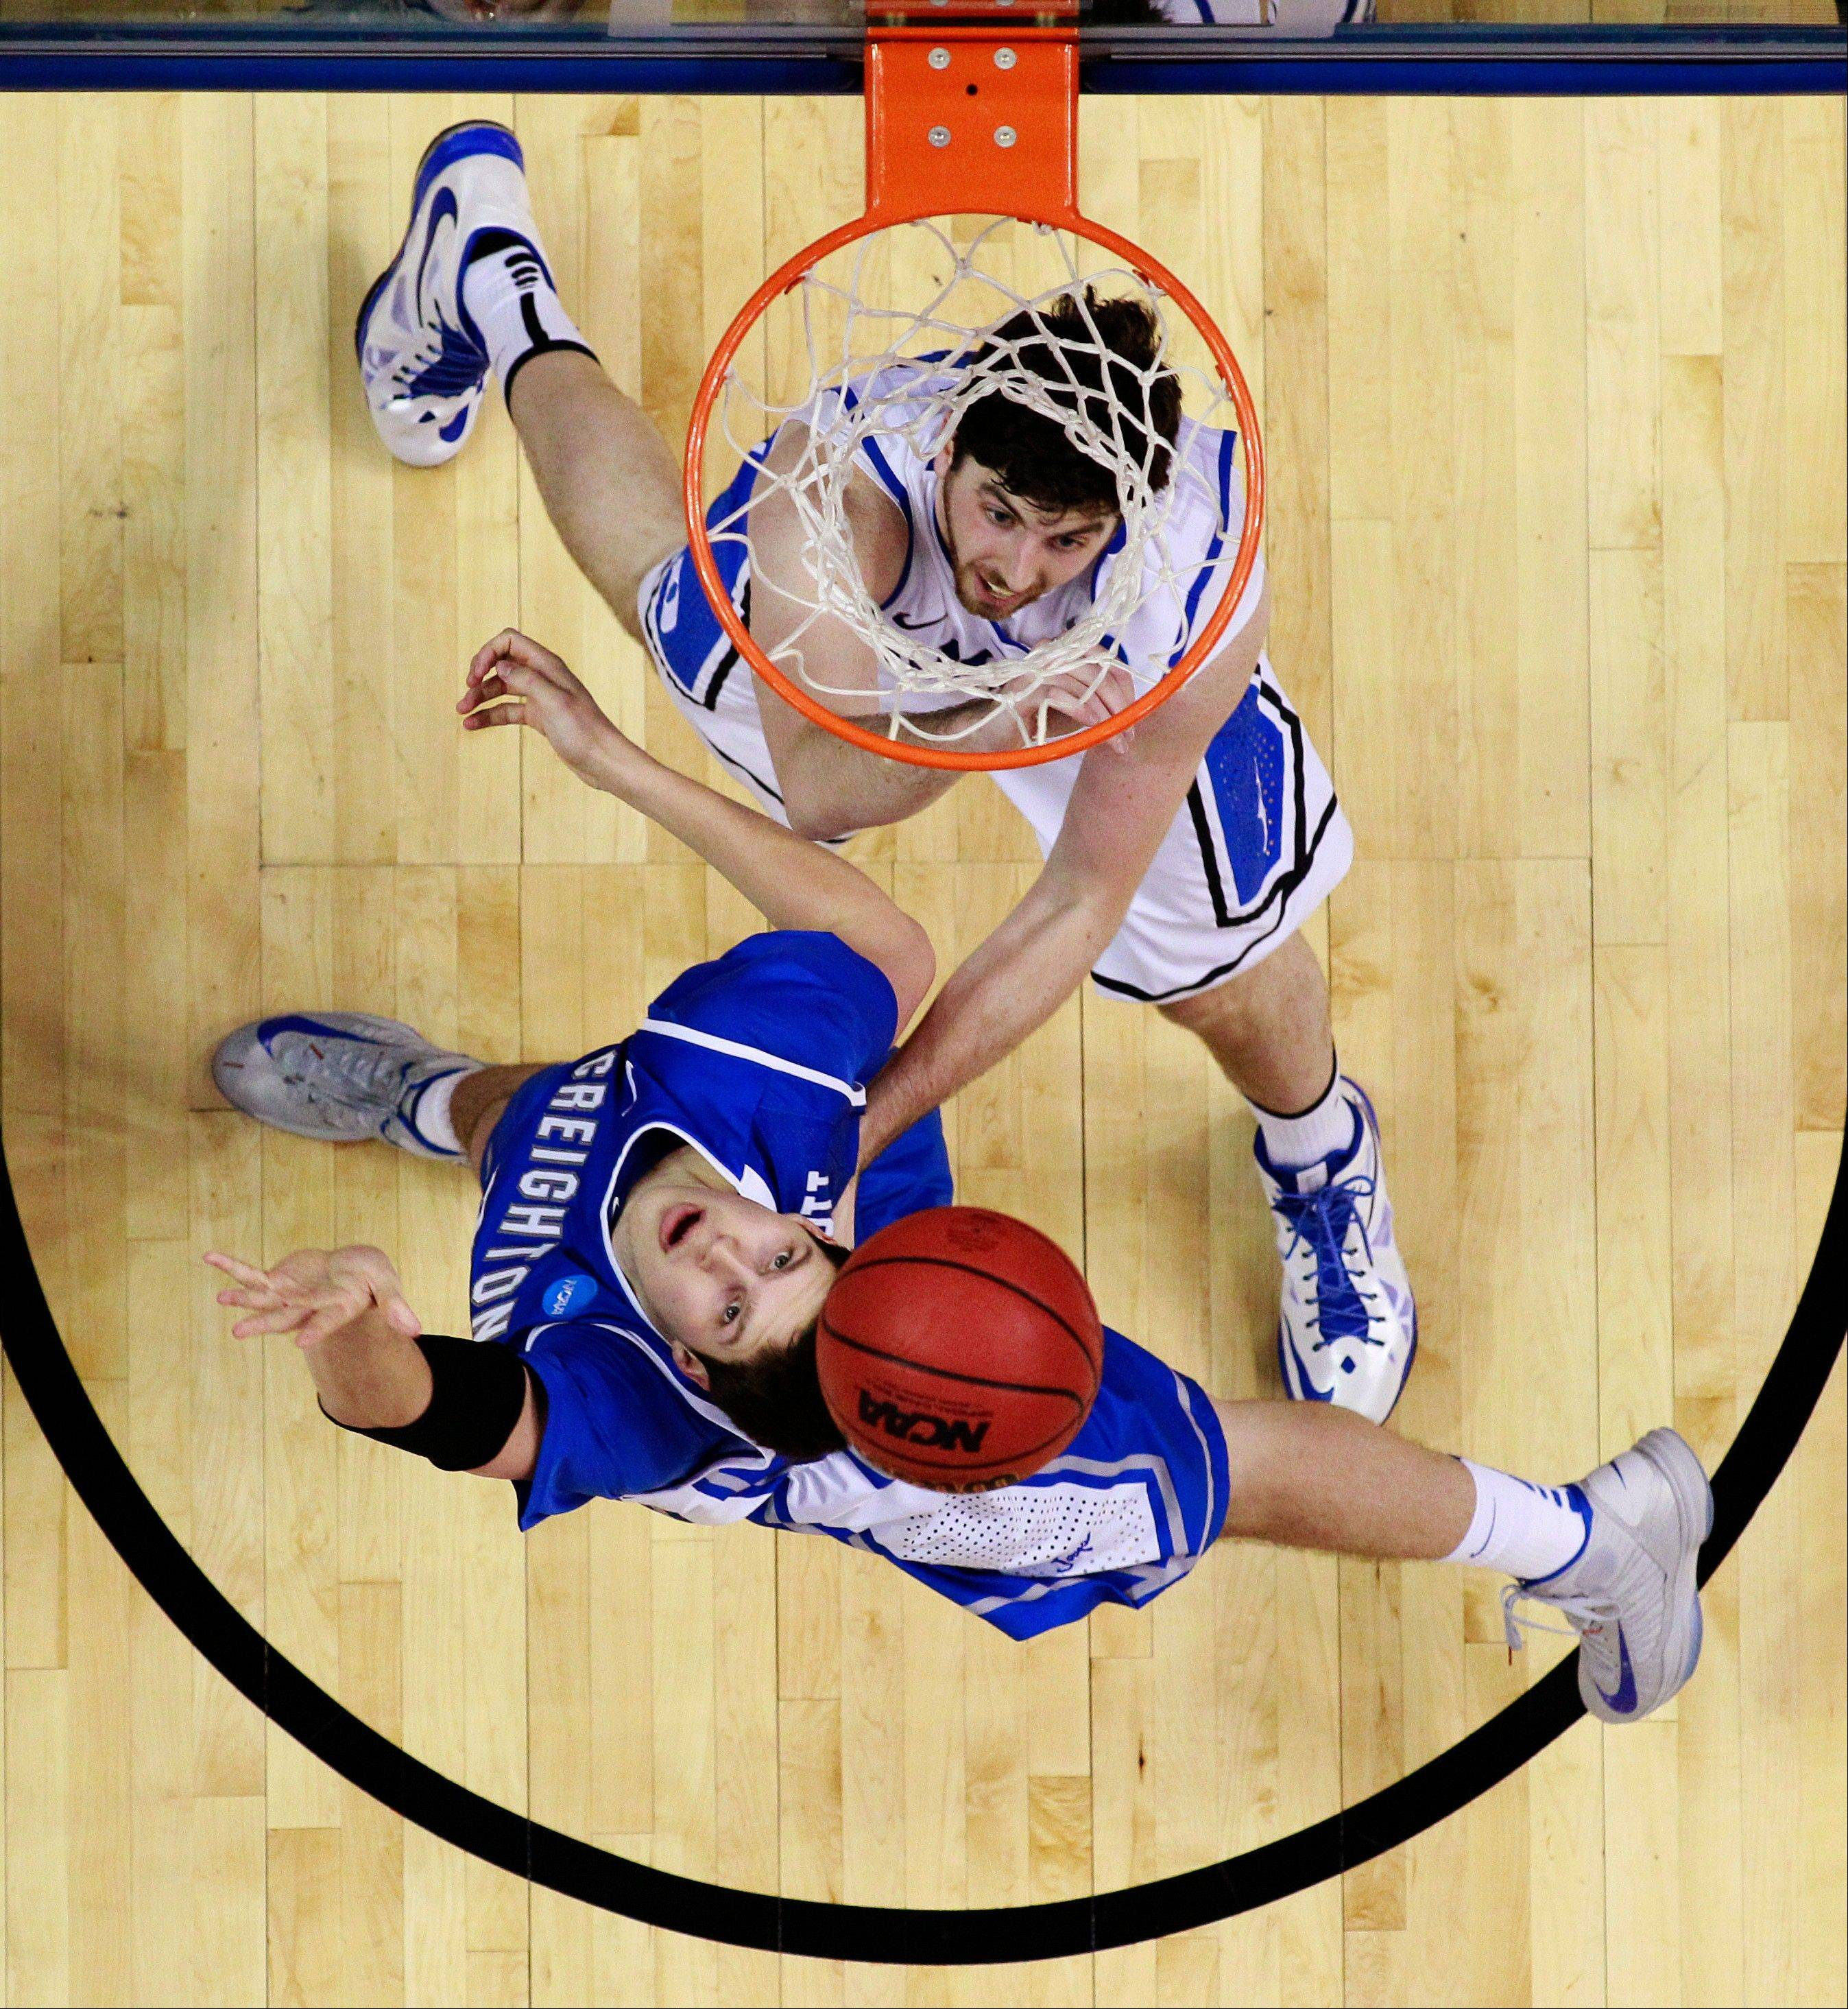 Creighton's Doug McDermott, bottom, shoots against Duke's Ryan Kelly during the second half of a third-round game of the NCAA college basketball tournament, Sunday, March 24, 2013, in Philadelphia.